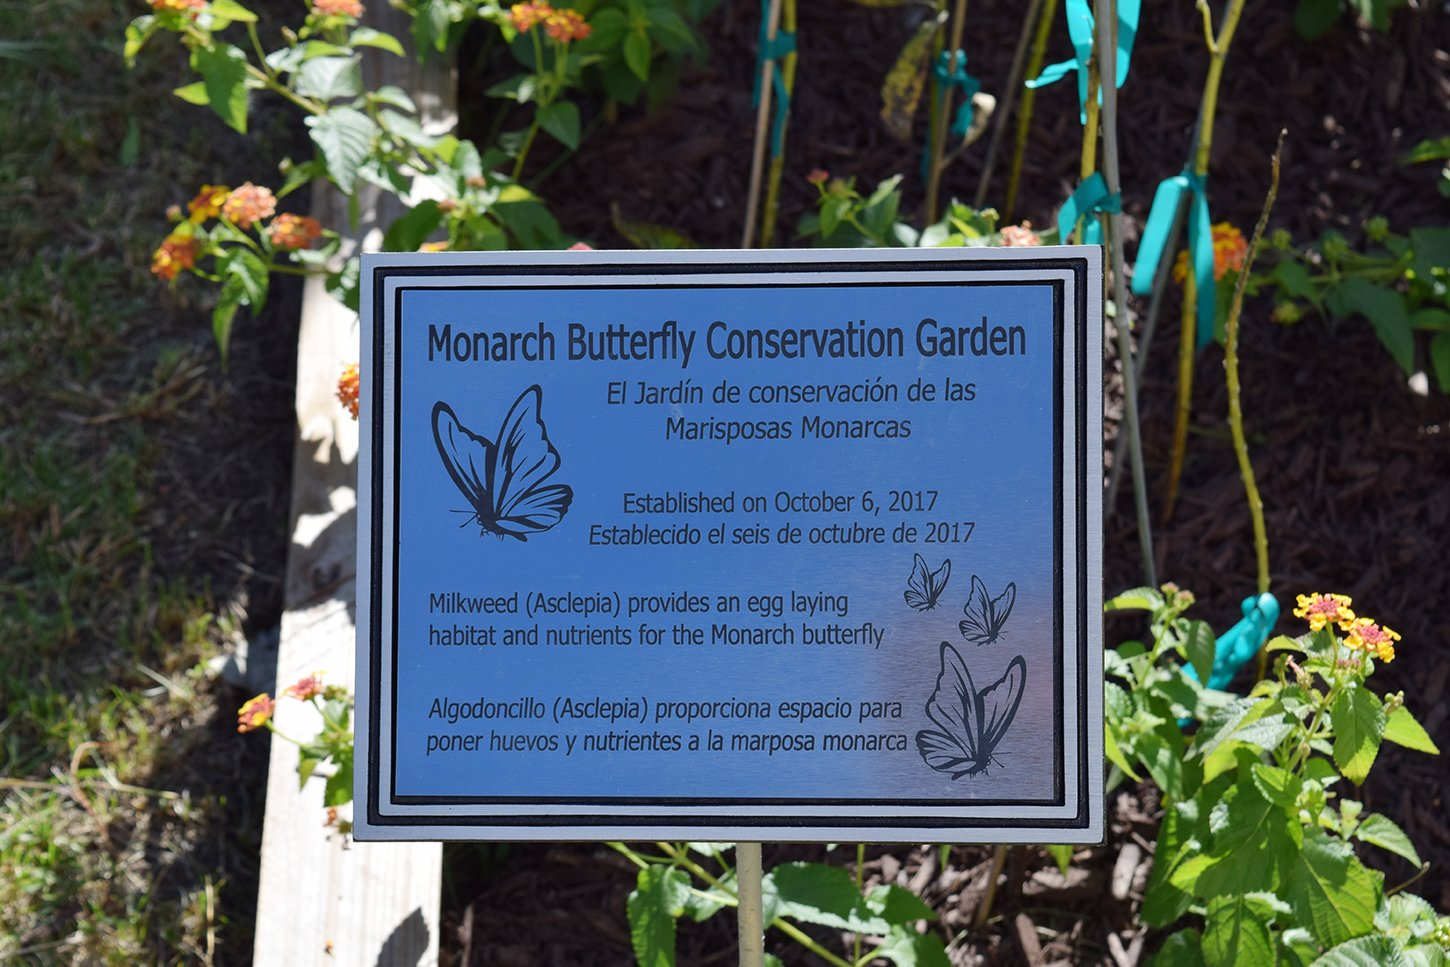 With the help of Marlene Scott's friend Gretchen Bandy-Blacketter, the SPHS Spanish classes constructed the monarch butterfly garden.